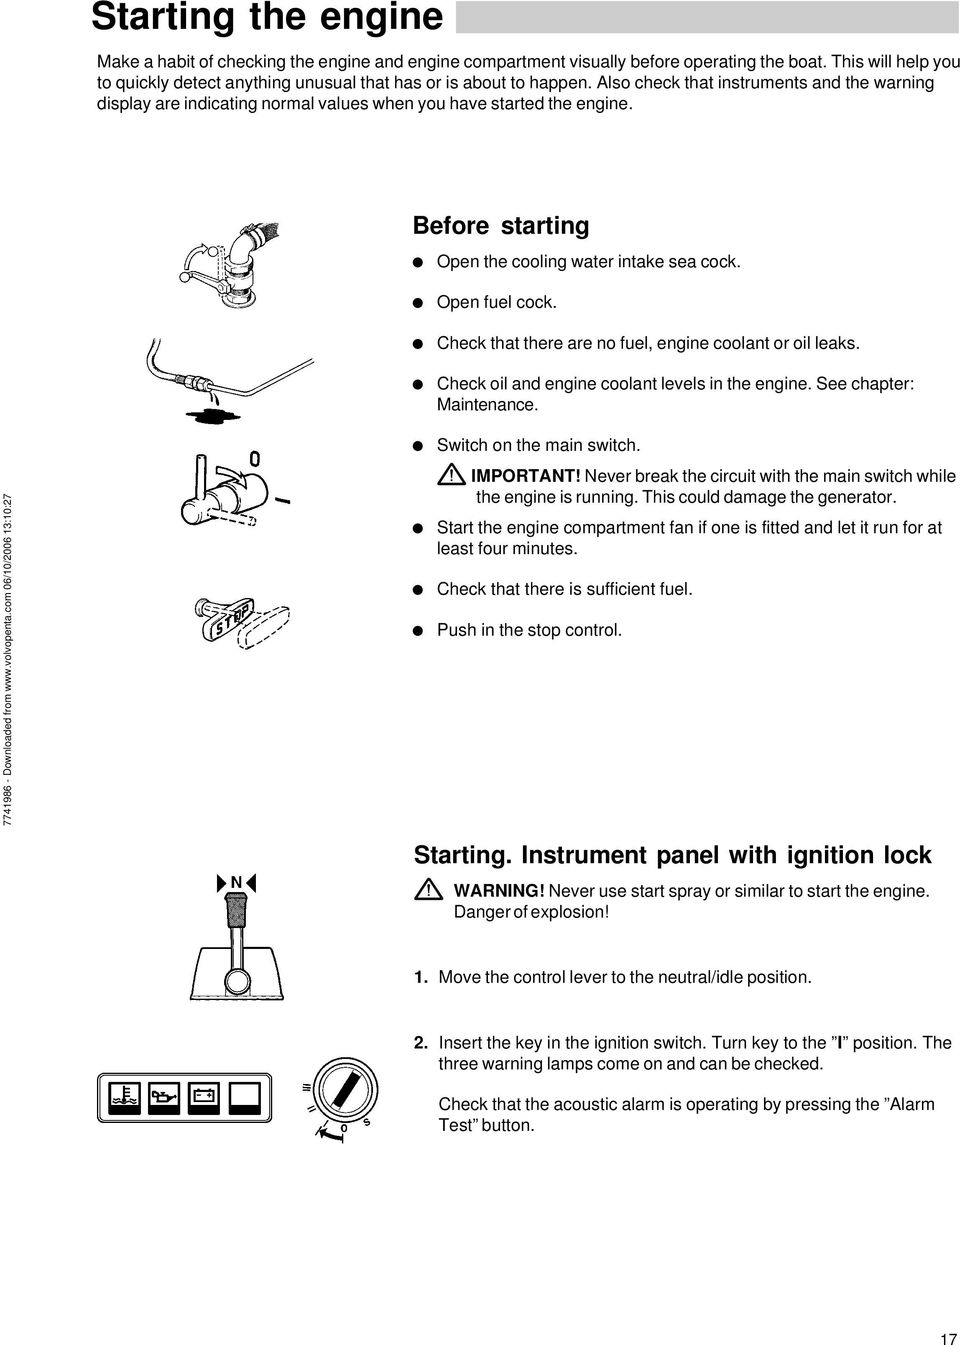 Operator S Manual Md2010 Md2020 Md2030 Md Pdf Mins Marine Wiring Diagrams Check That There Are No Fuel Engine Coolant Or Oil Leaks And